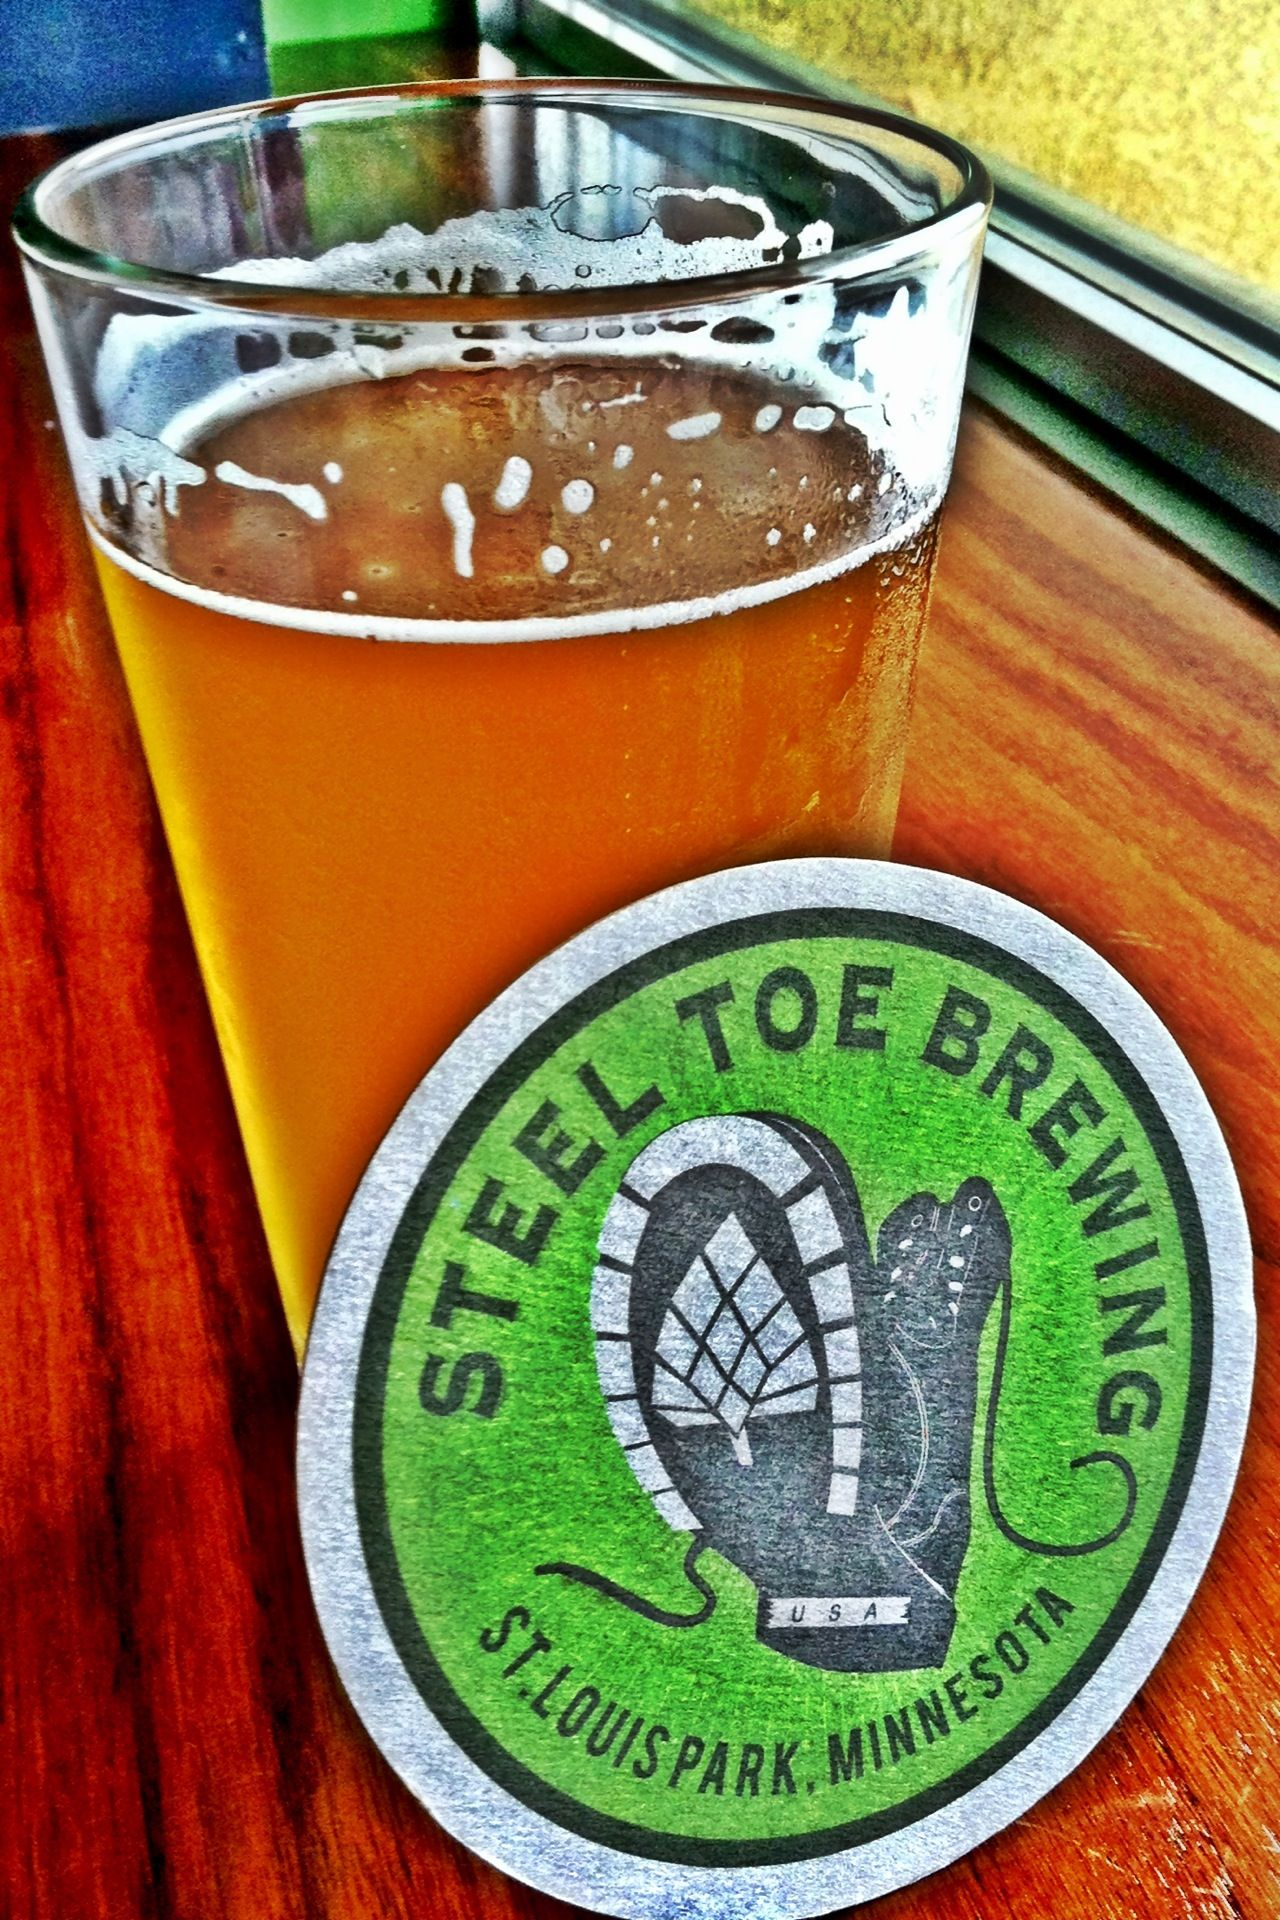 Steel toe brewing in saint louis park mn with images